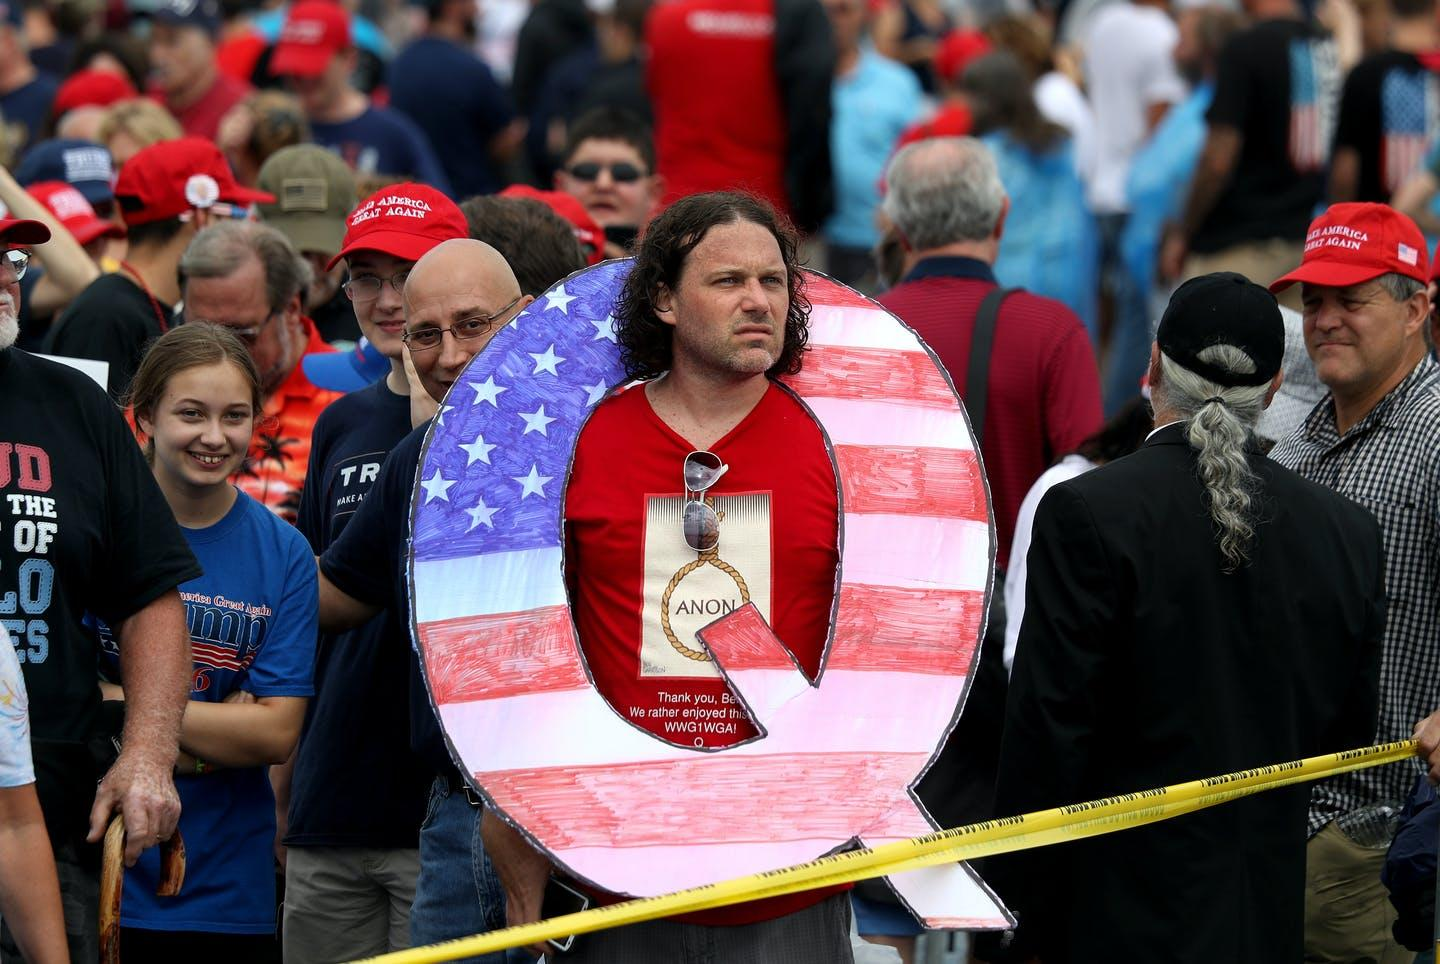 "<span class=""caption"">The big question looming over QAnon: What happens after March 4?</span> <span class=""attribution""><a class=""link rapid-noclick-resp"" href=""https://www.gettyimages.com/detail/news-photo/david-reinert-holds-a-large-q-sign-while-waiting-in-line-on-news-photo/1009769900?adppopup=true"" rel=""nofollow noopener"" target=""_blank"" data-ylk=""slk:Rick Loomis/Getty Images"">Rick Loomis/Getty Images</a></span>"